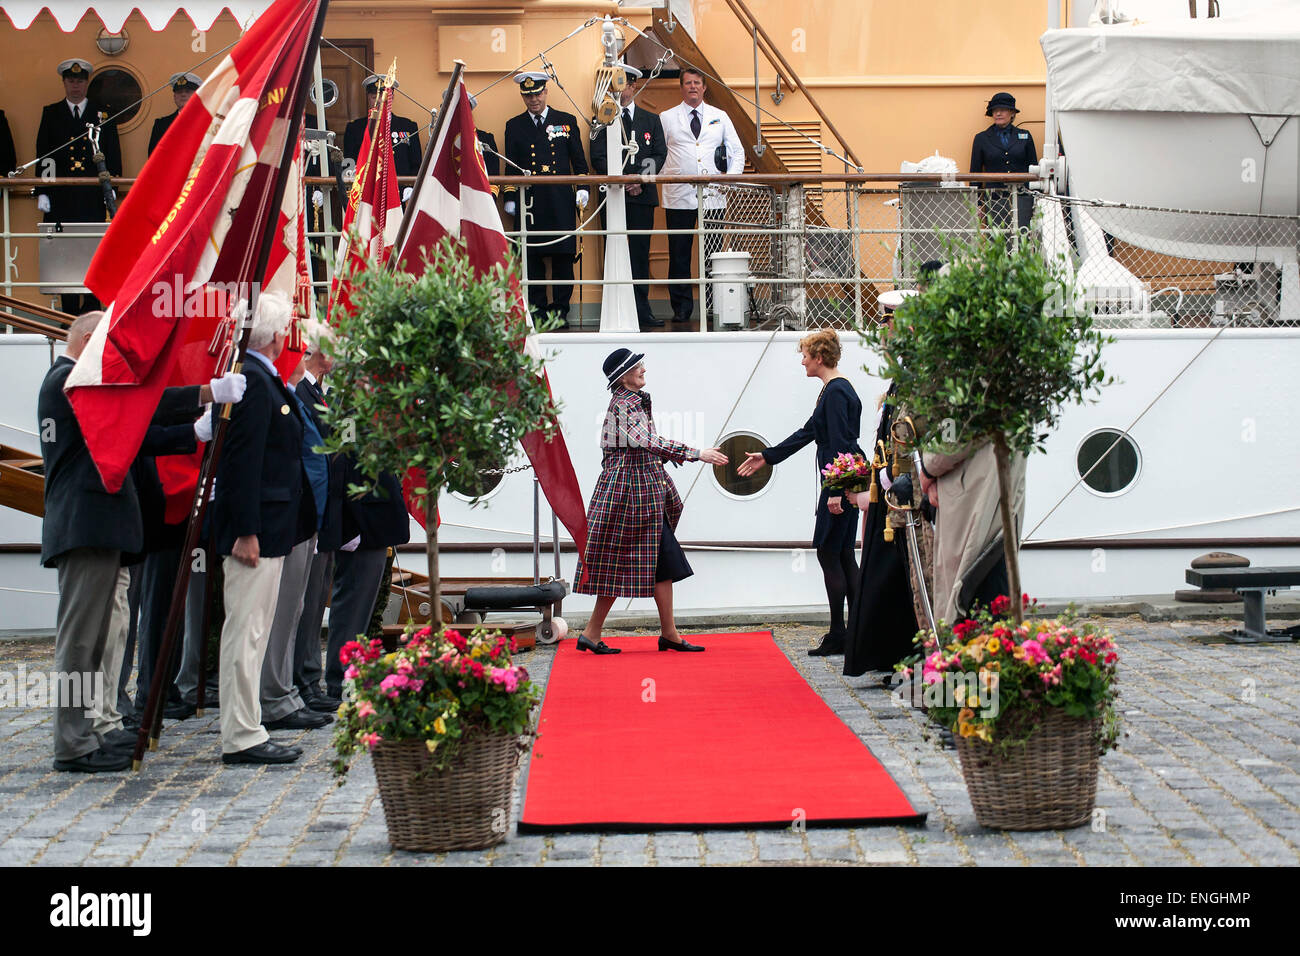 Helsingore, Denmark. 5th May, 2015. H. M. Queen Margrethe arrives with the Prince Consort onboard the royal ship, - Stock Image